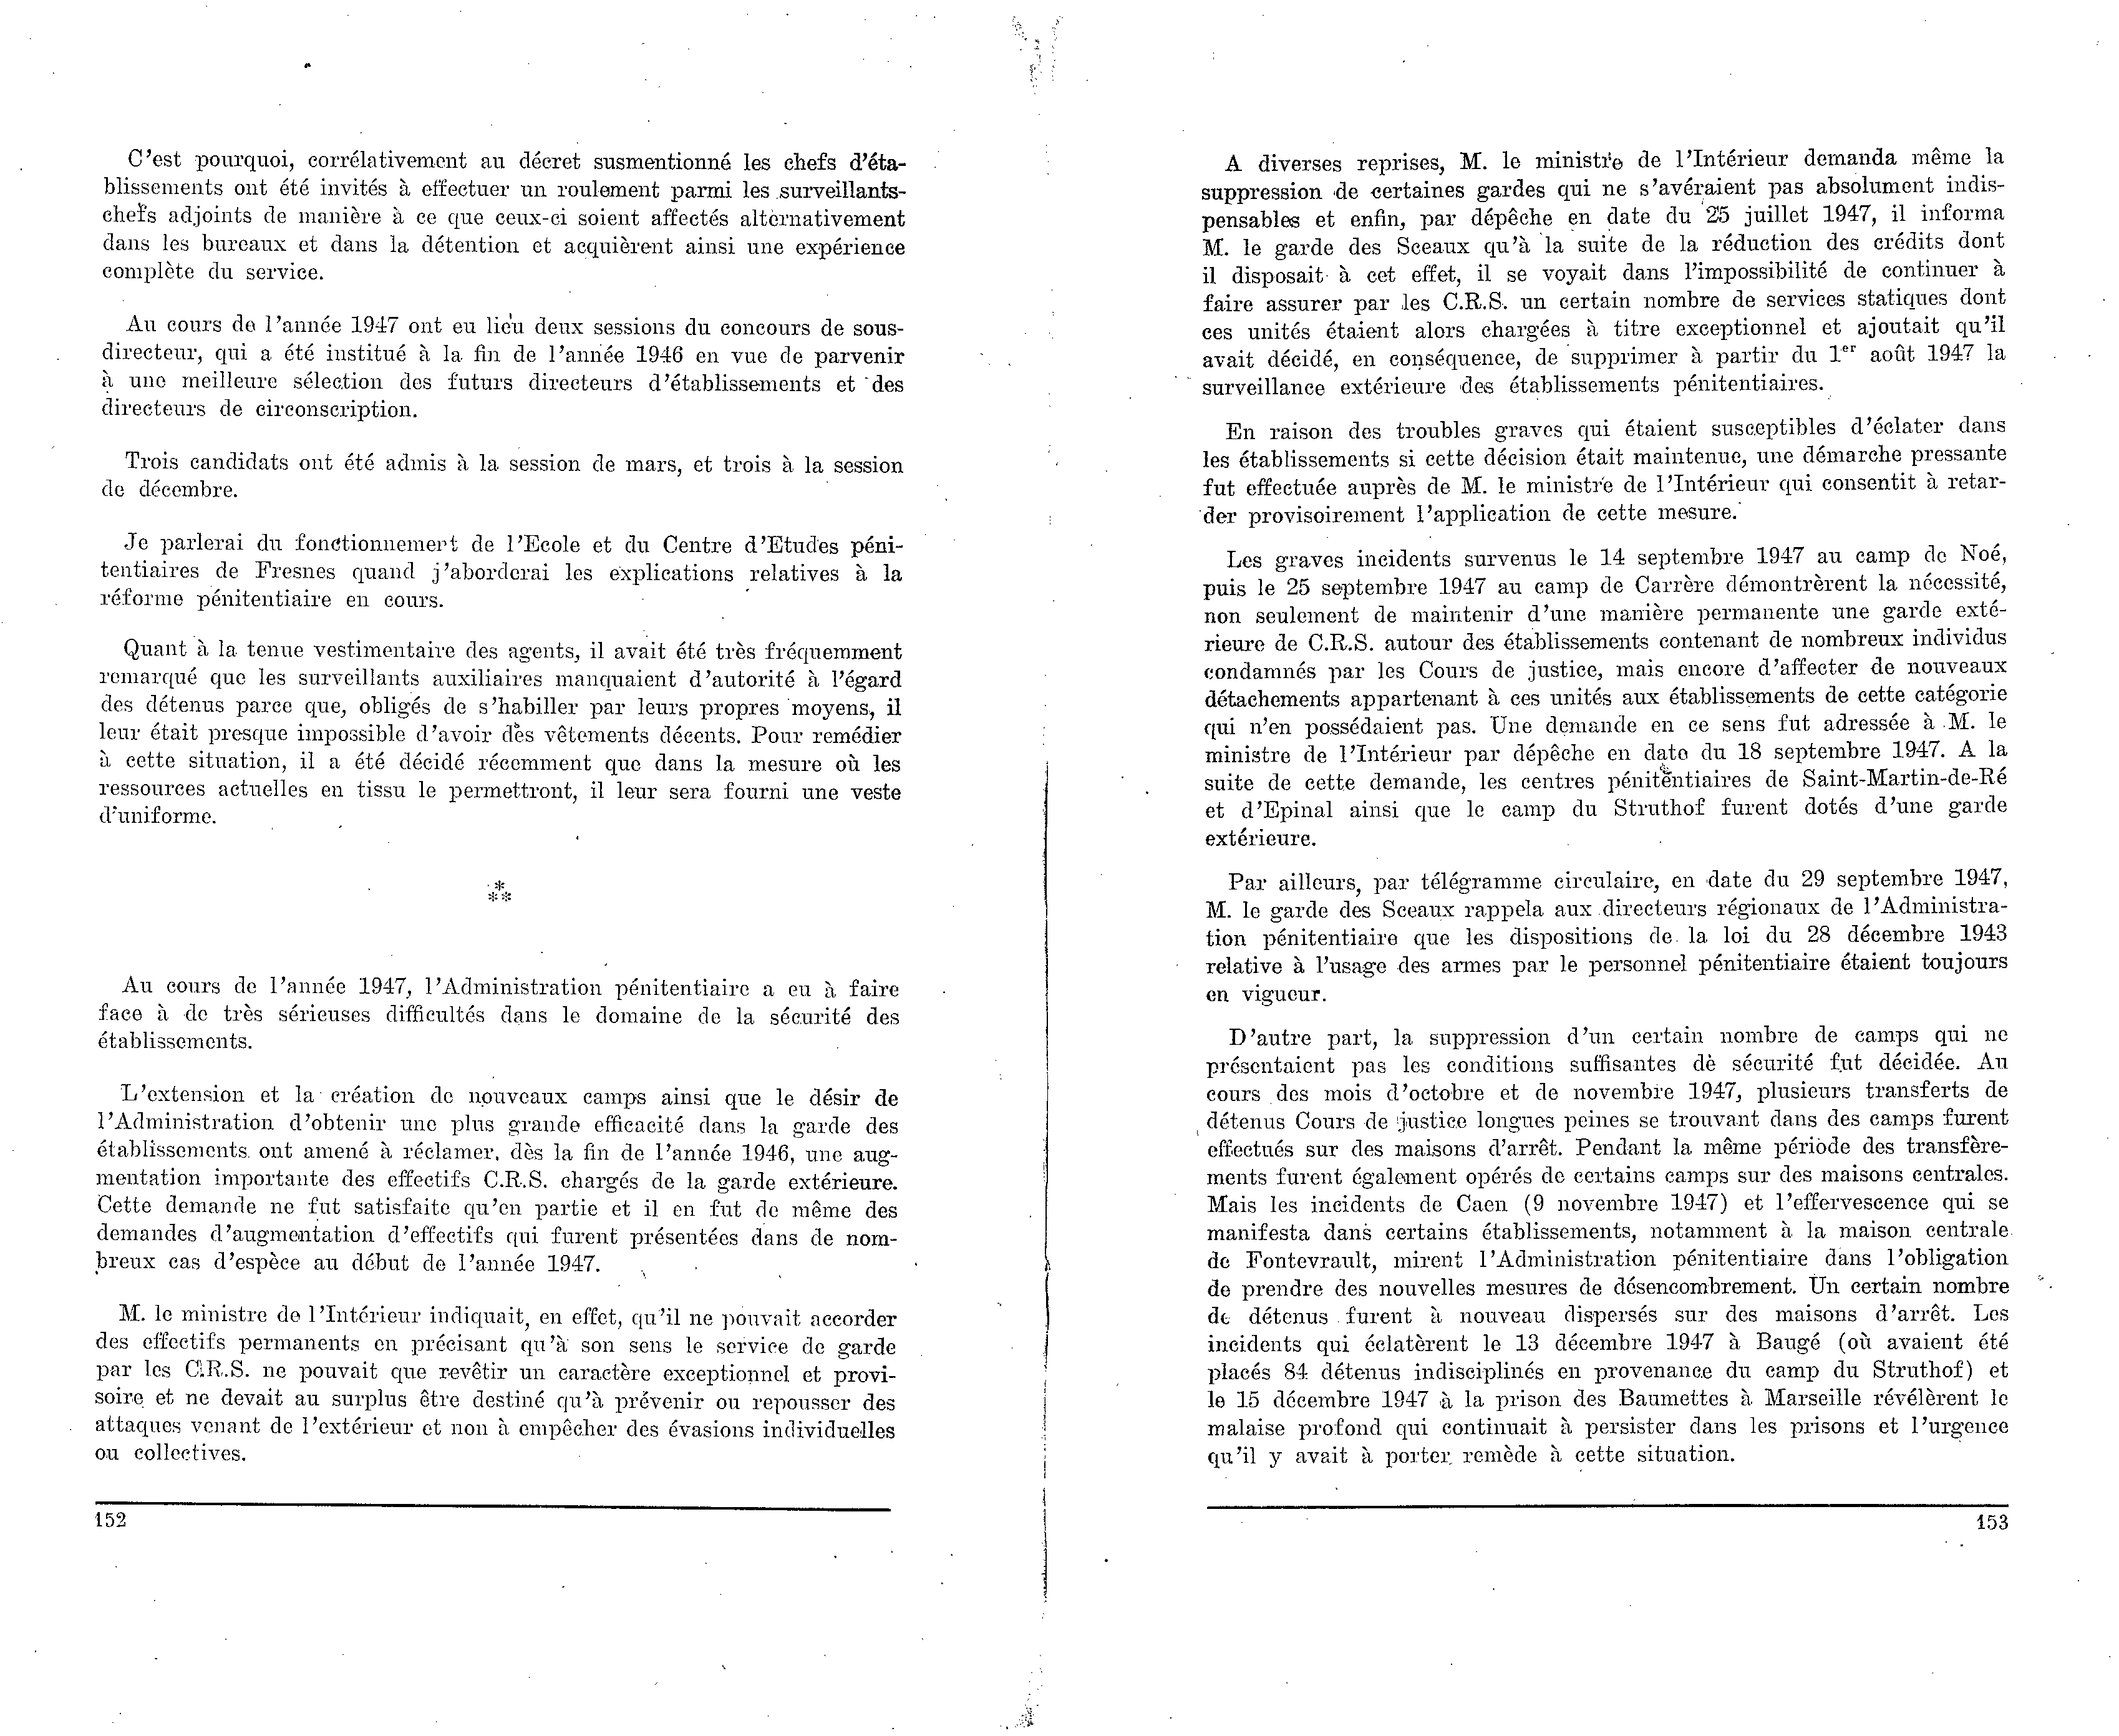 Administration pénitentiaire. Rapport annuel (1947) — 152-153 7291ae5d220